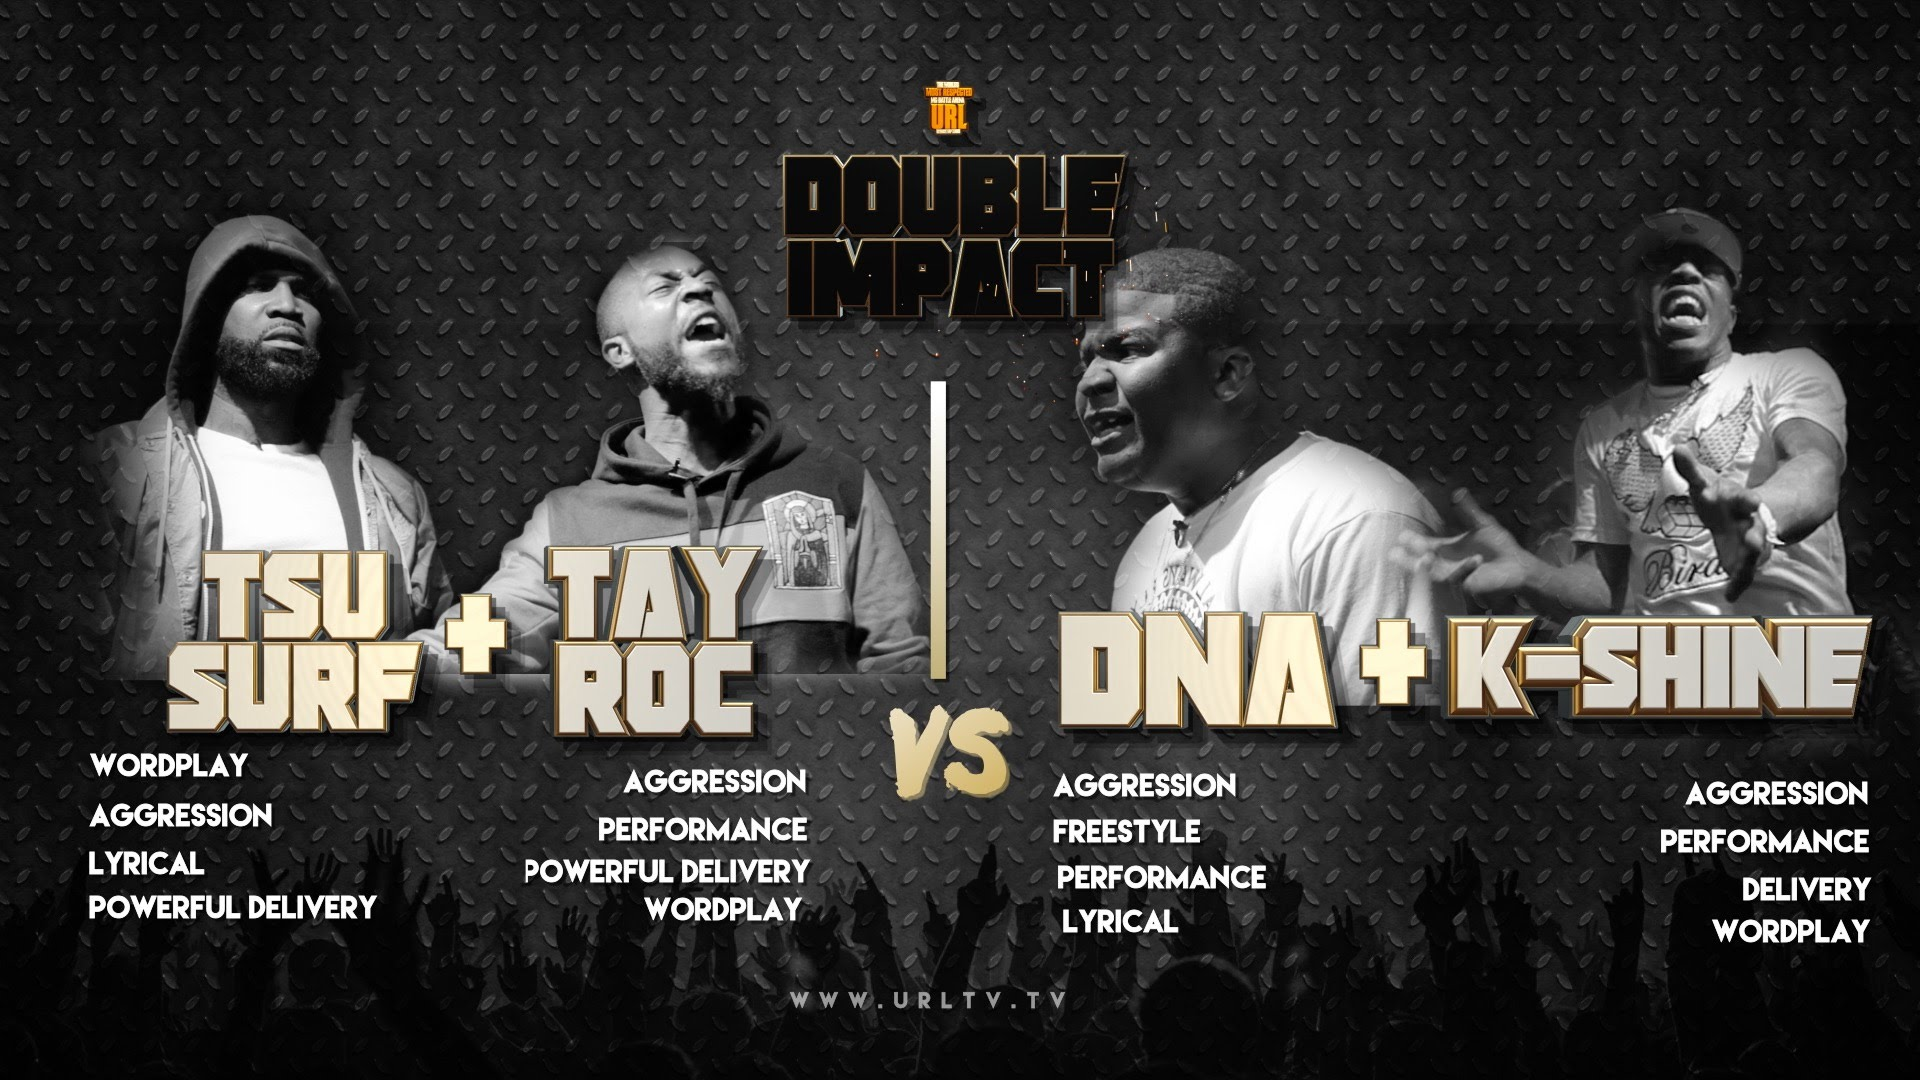 Tsu Surf & Tay Roc vs K Shine & DNA Smack/ URL Rap Battle